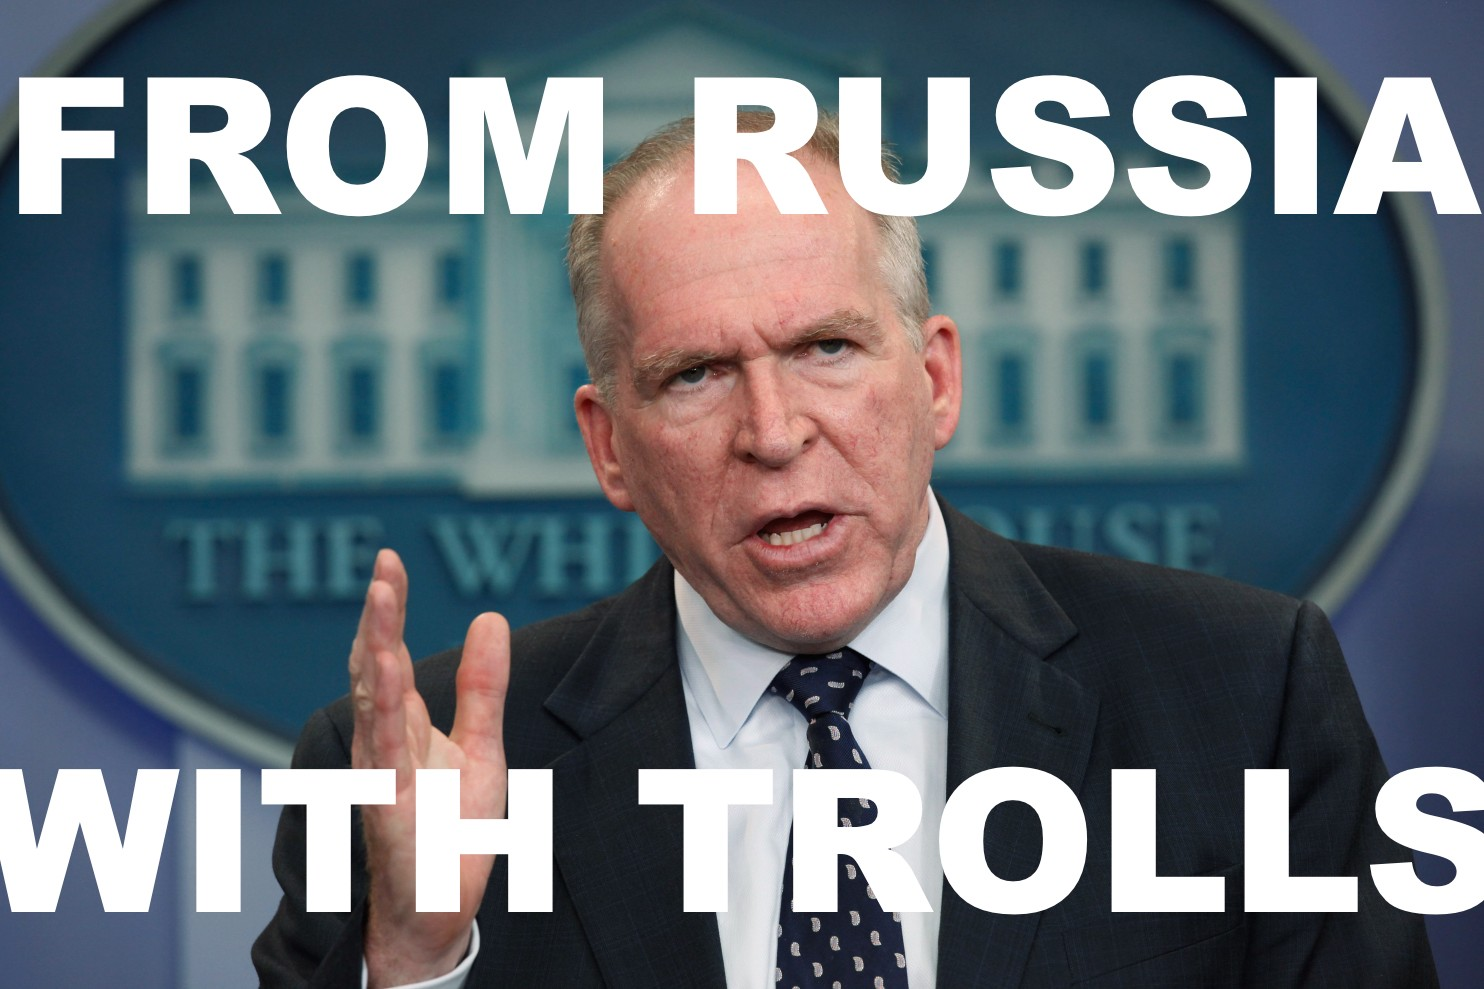 [DIRECTOR OF CIA, JOHN O. BRENNAN]